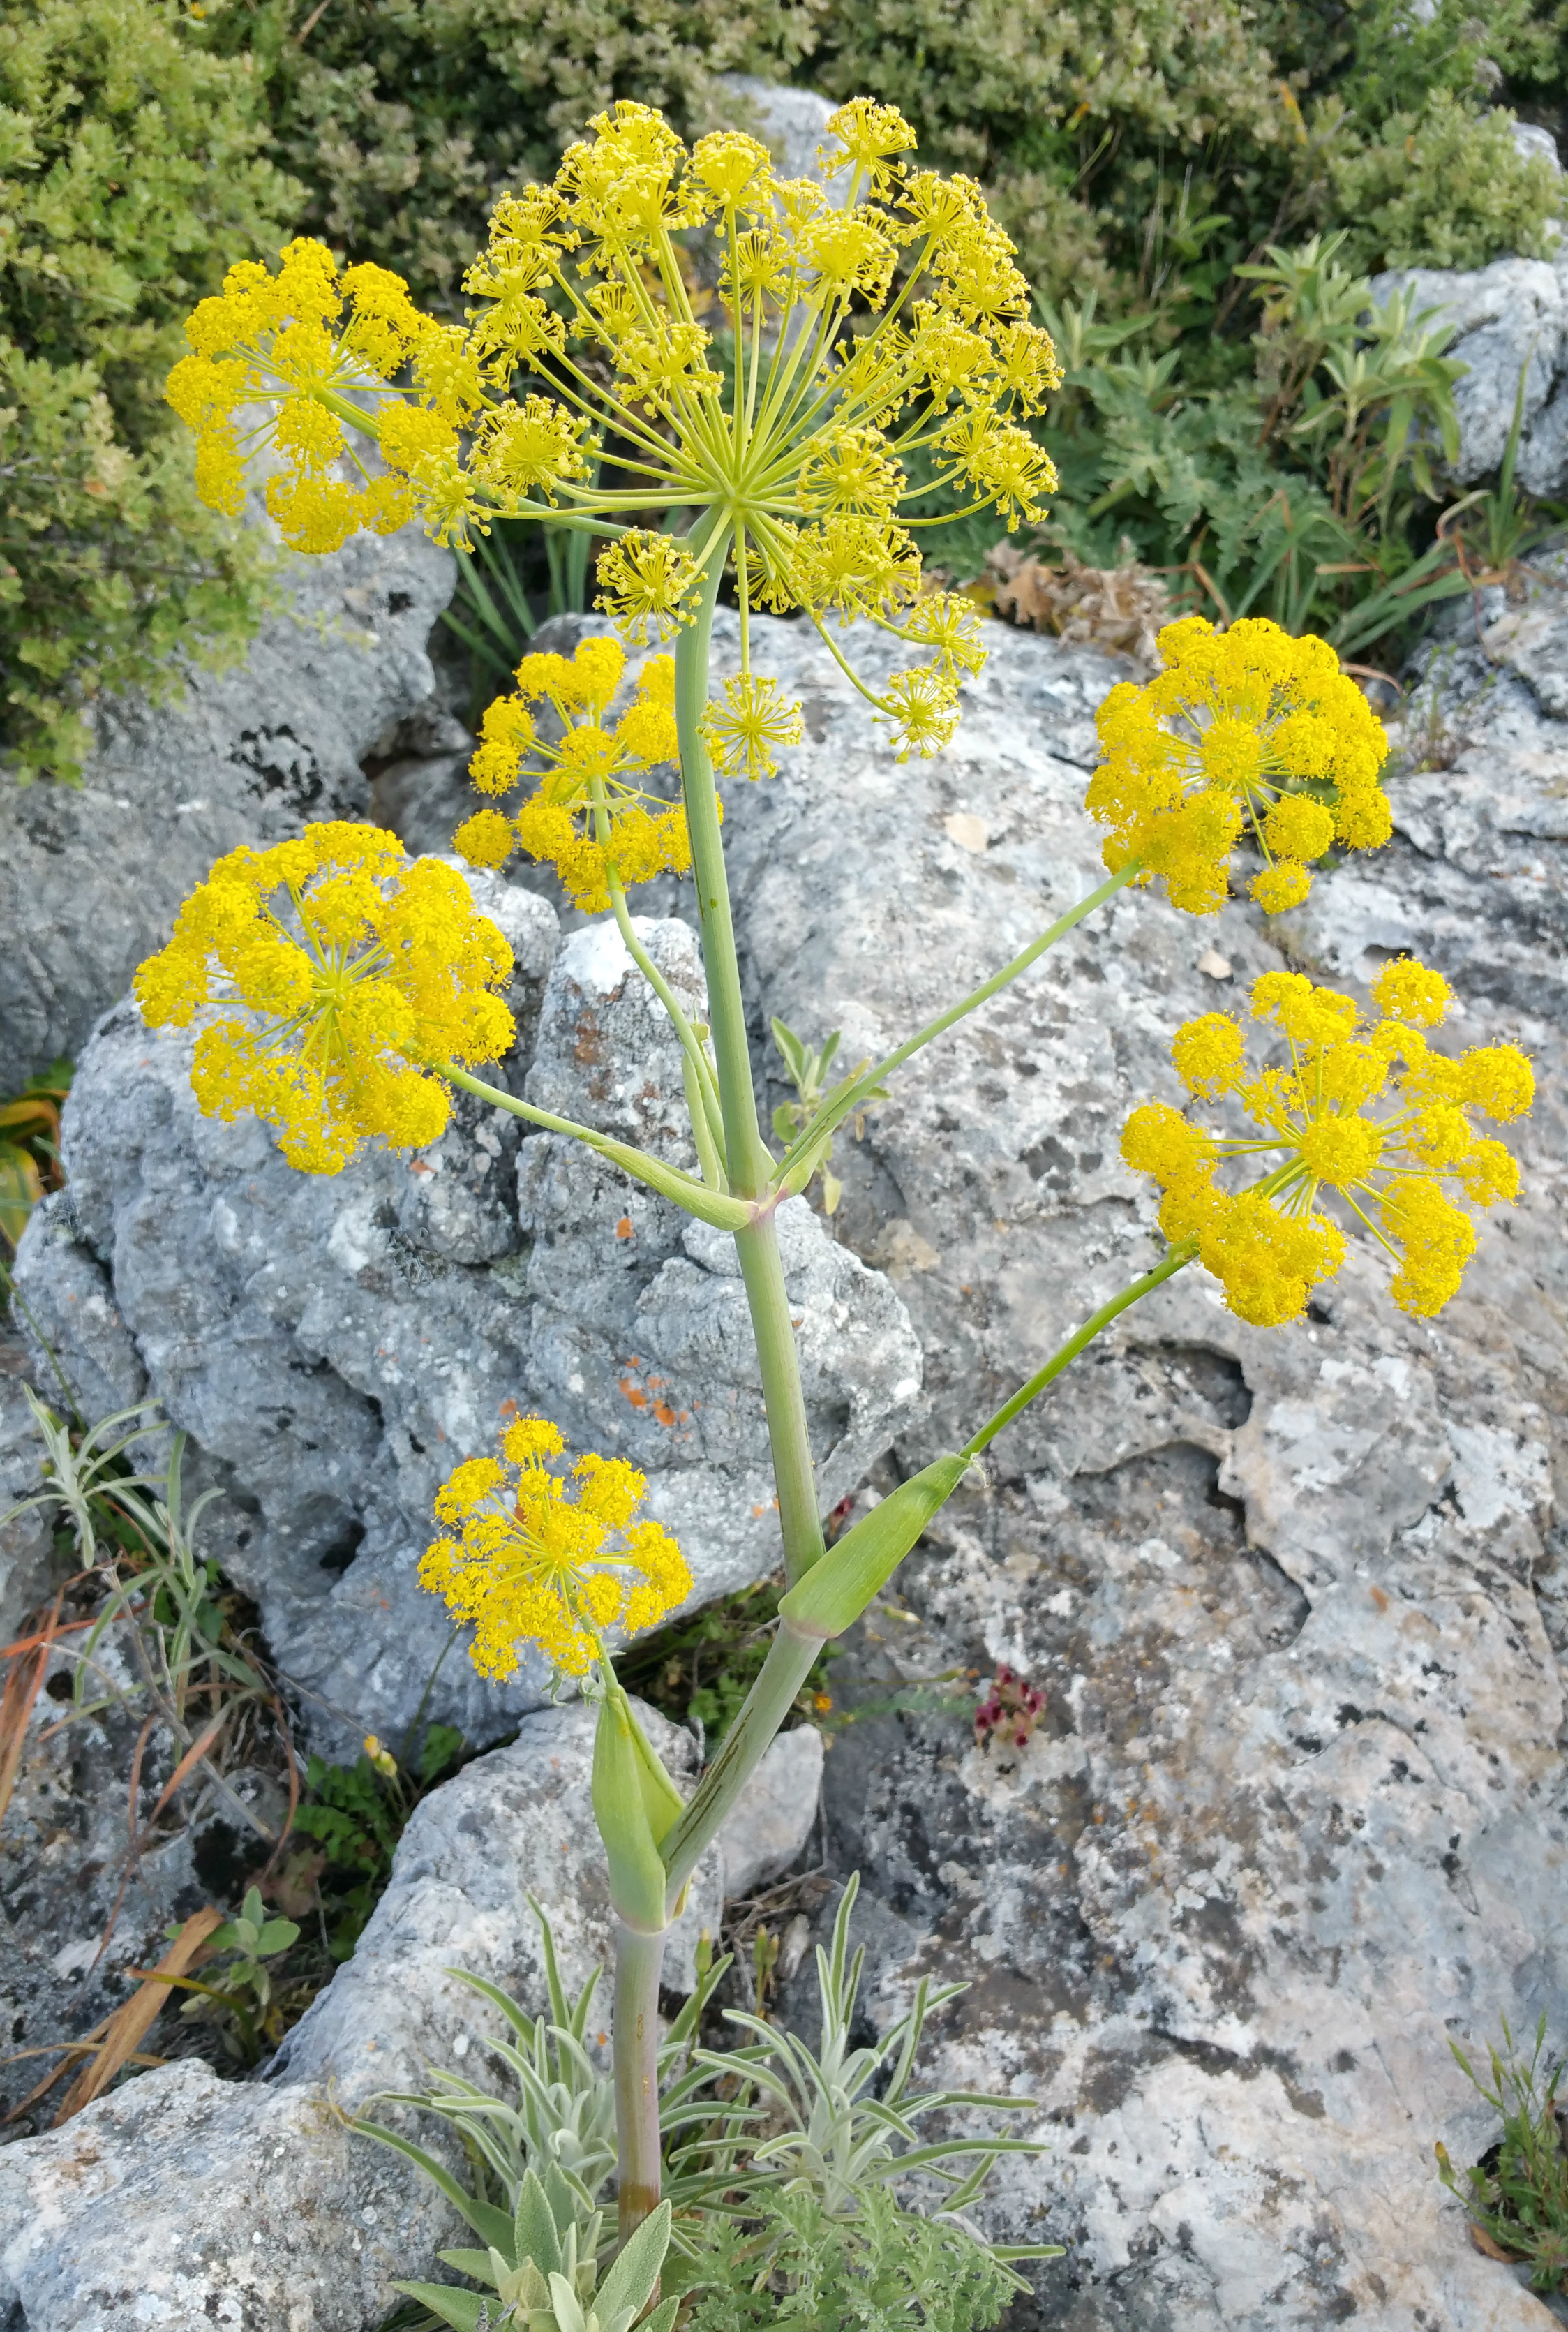 Ferula tingitana  is believed to be the closest extant relative of silphium.